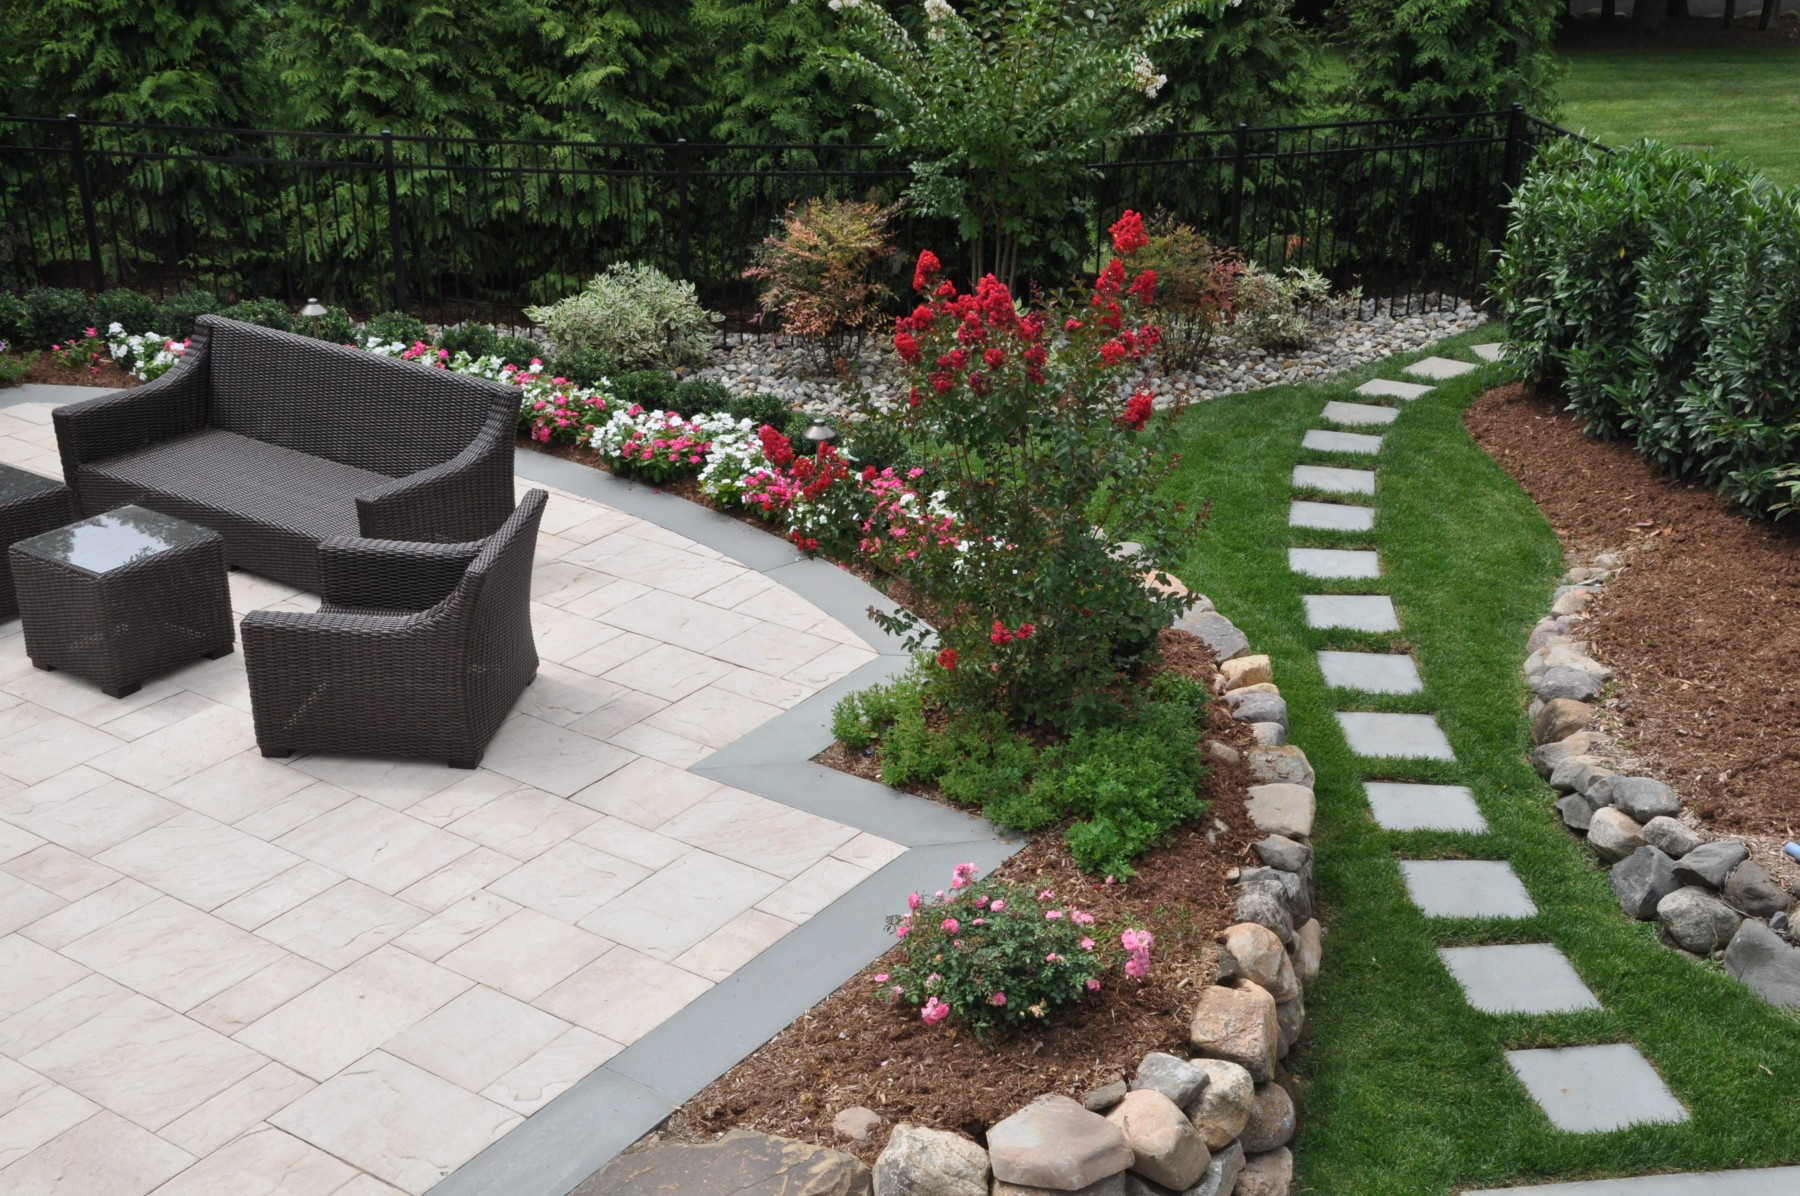 Small Backyard Landscape Design Ideas 15 Beautiful Small Backyard in 13 Awesome Initiatives of How to Craft Landscape Designs For Small Backyards